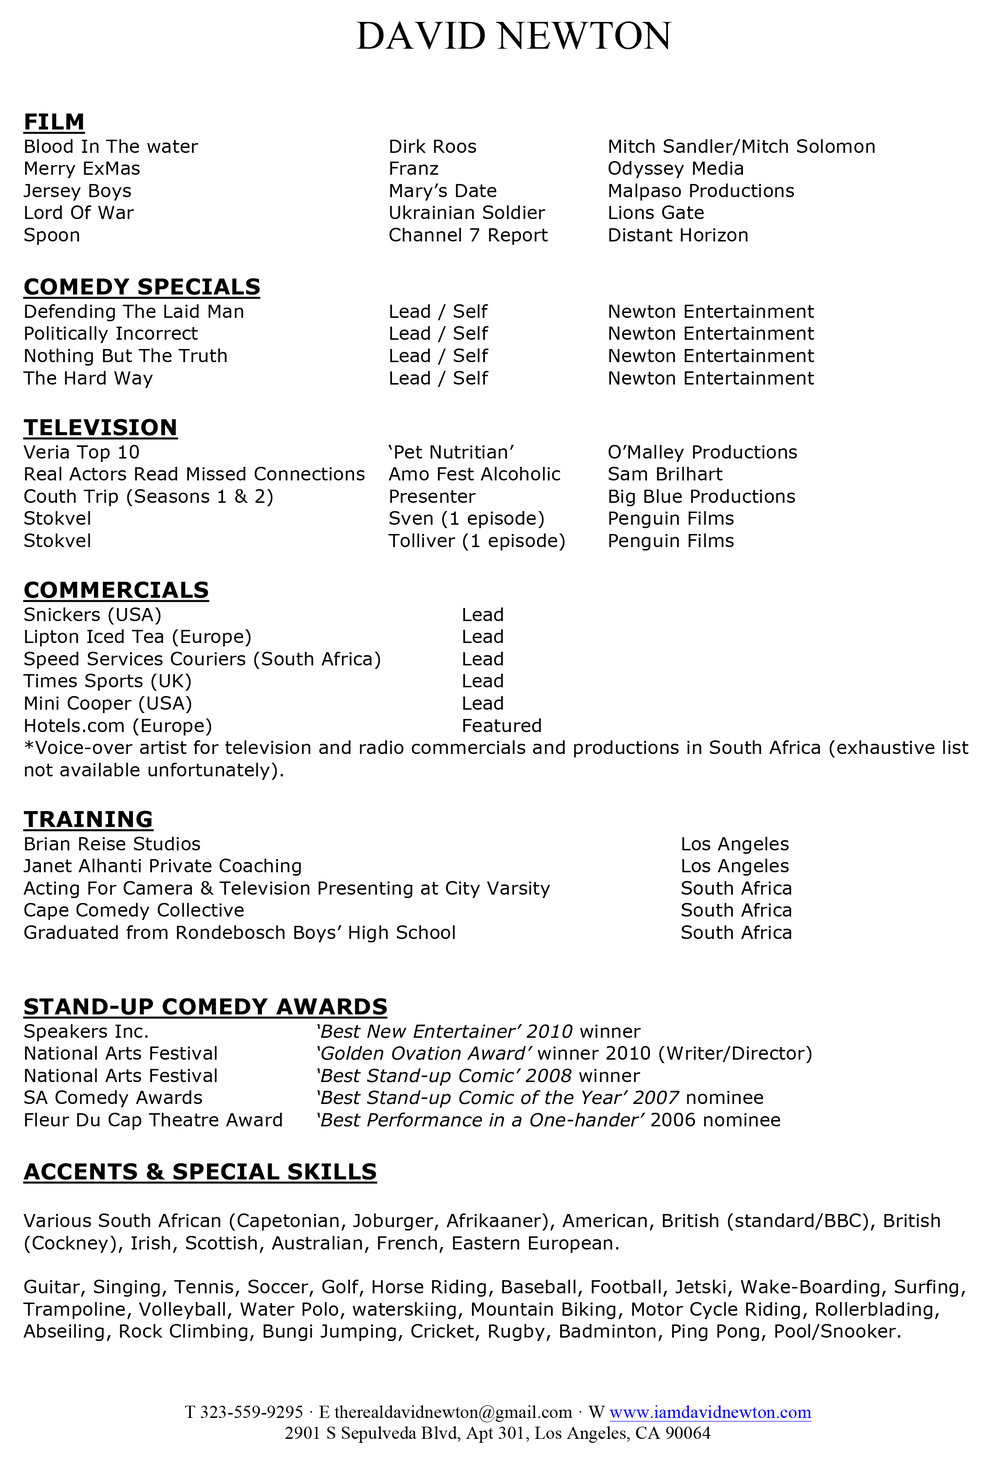 DAVID NEWTON ACTING RESUME 2017